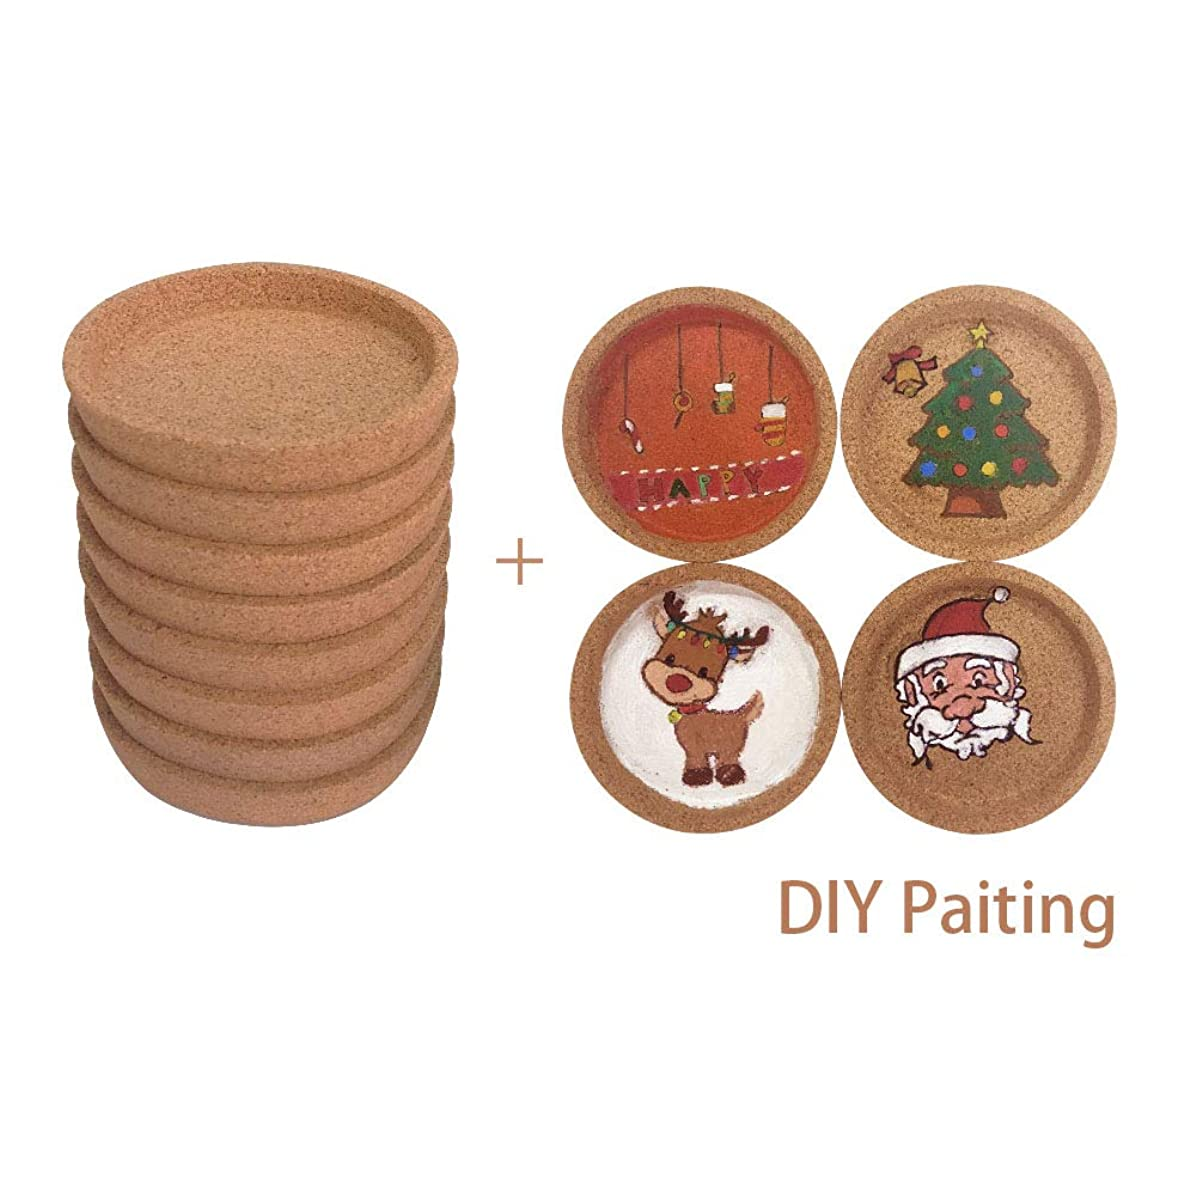 Buy 8 PCS Get 12 PCS-BOEISEN Cork Coasters For Drinks Absorbent Cup Mat With Round Ring, Set of 8,Dia 3.9 inch